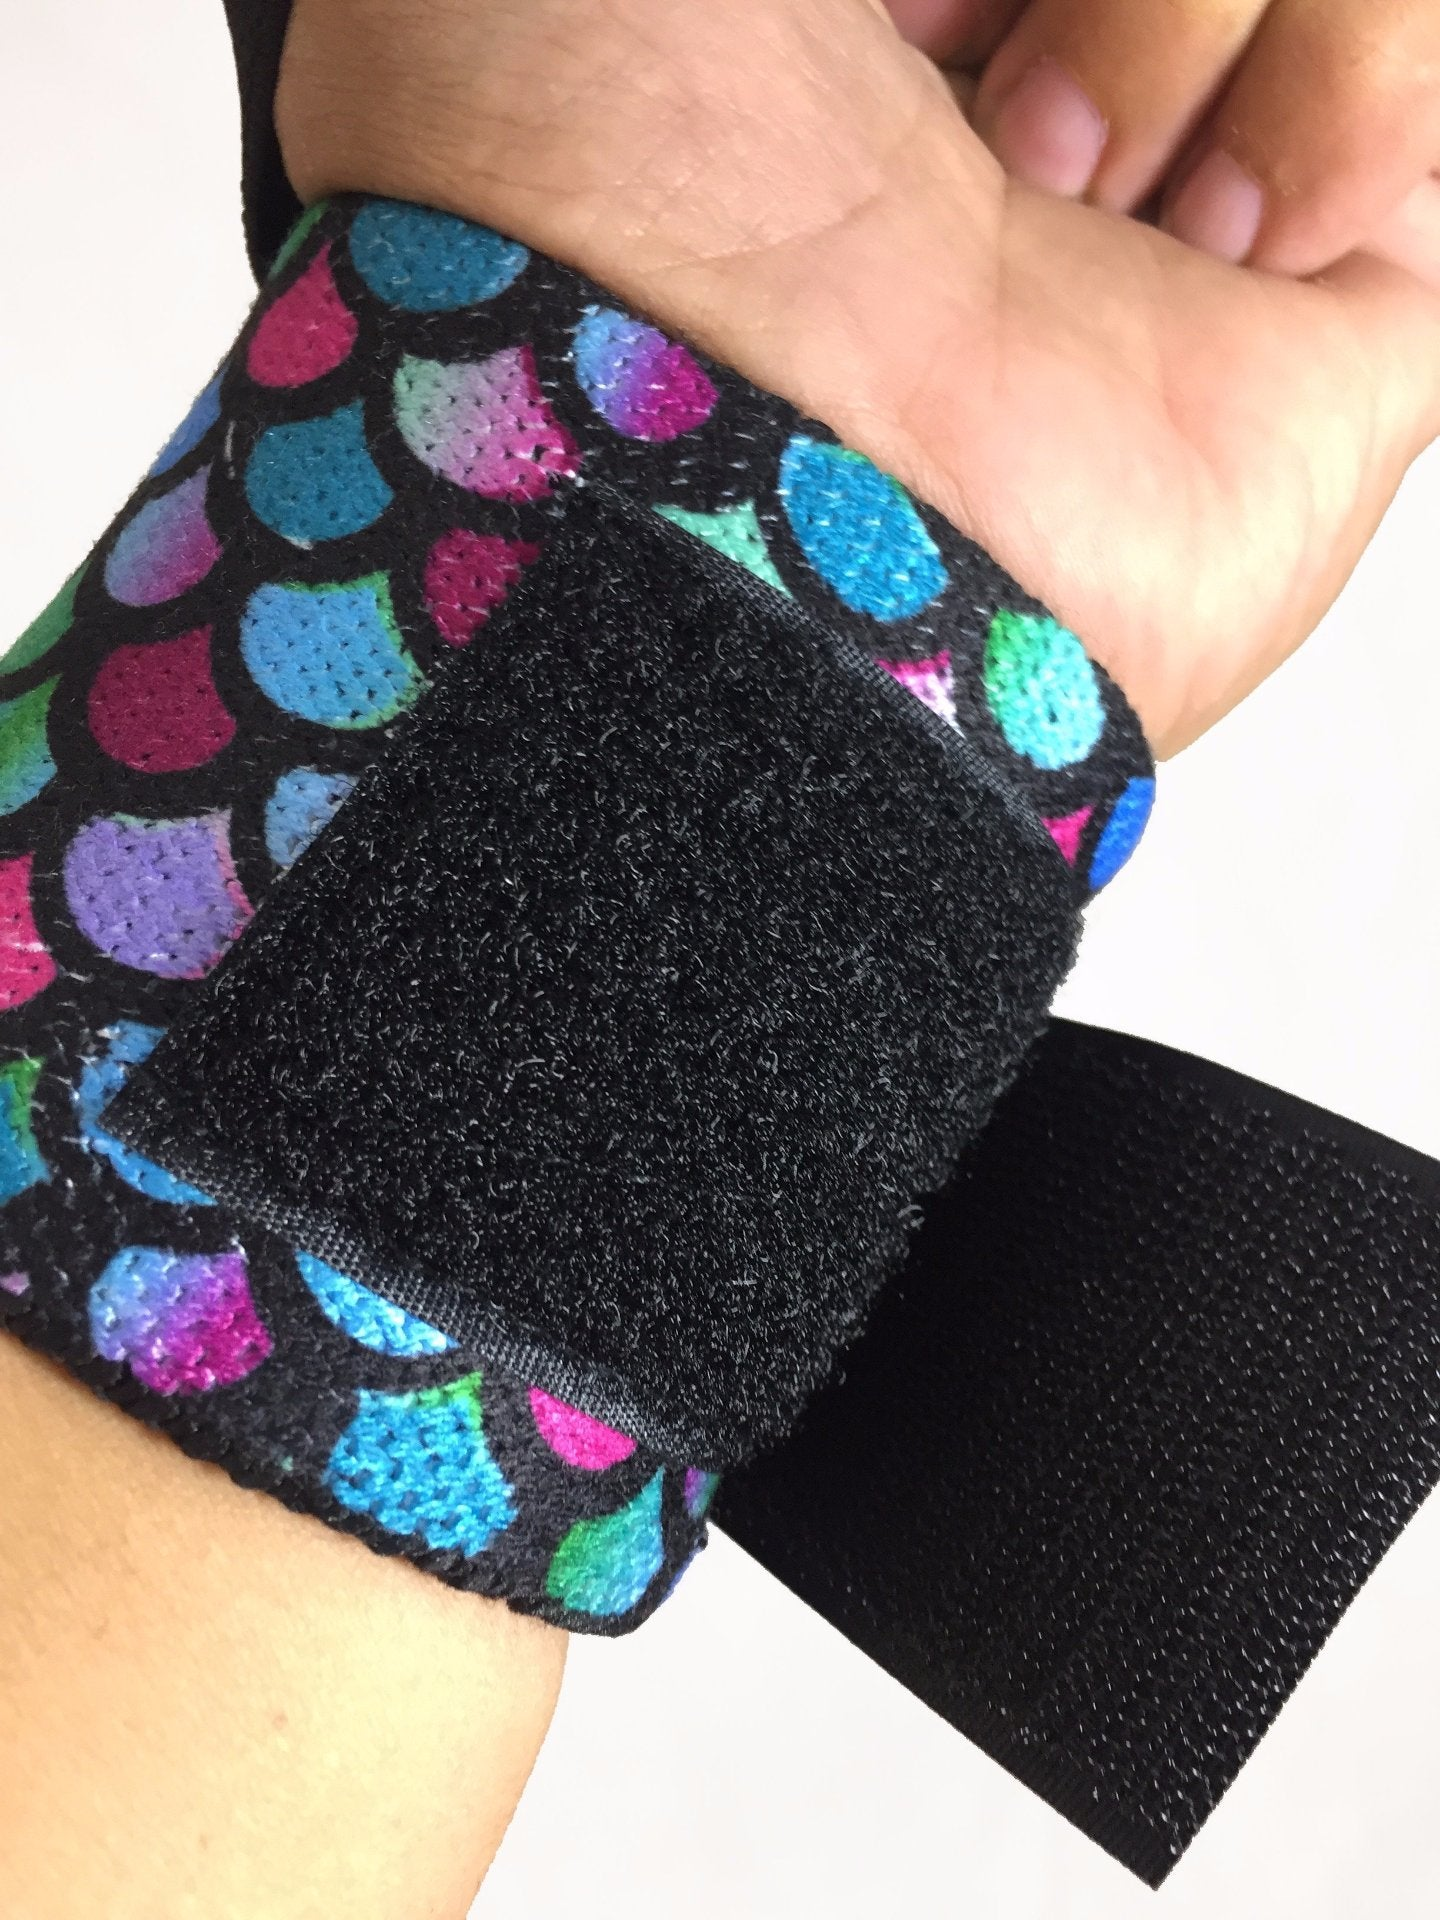 LIFTING THE DREAM WRIST WRAPS